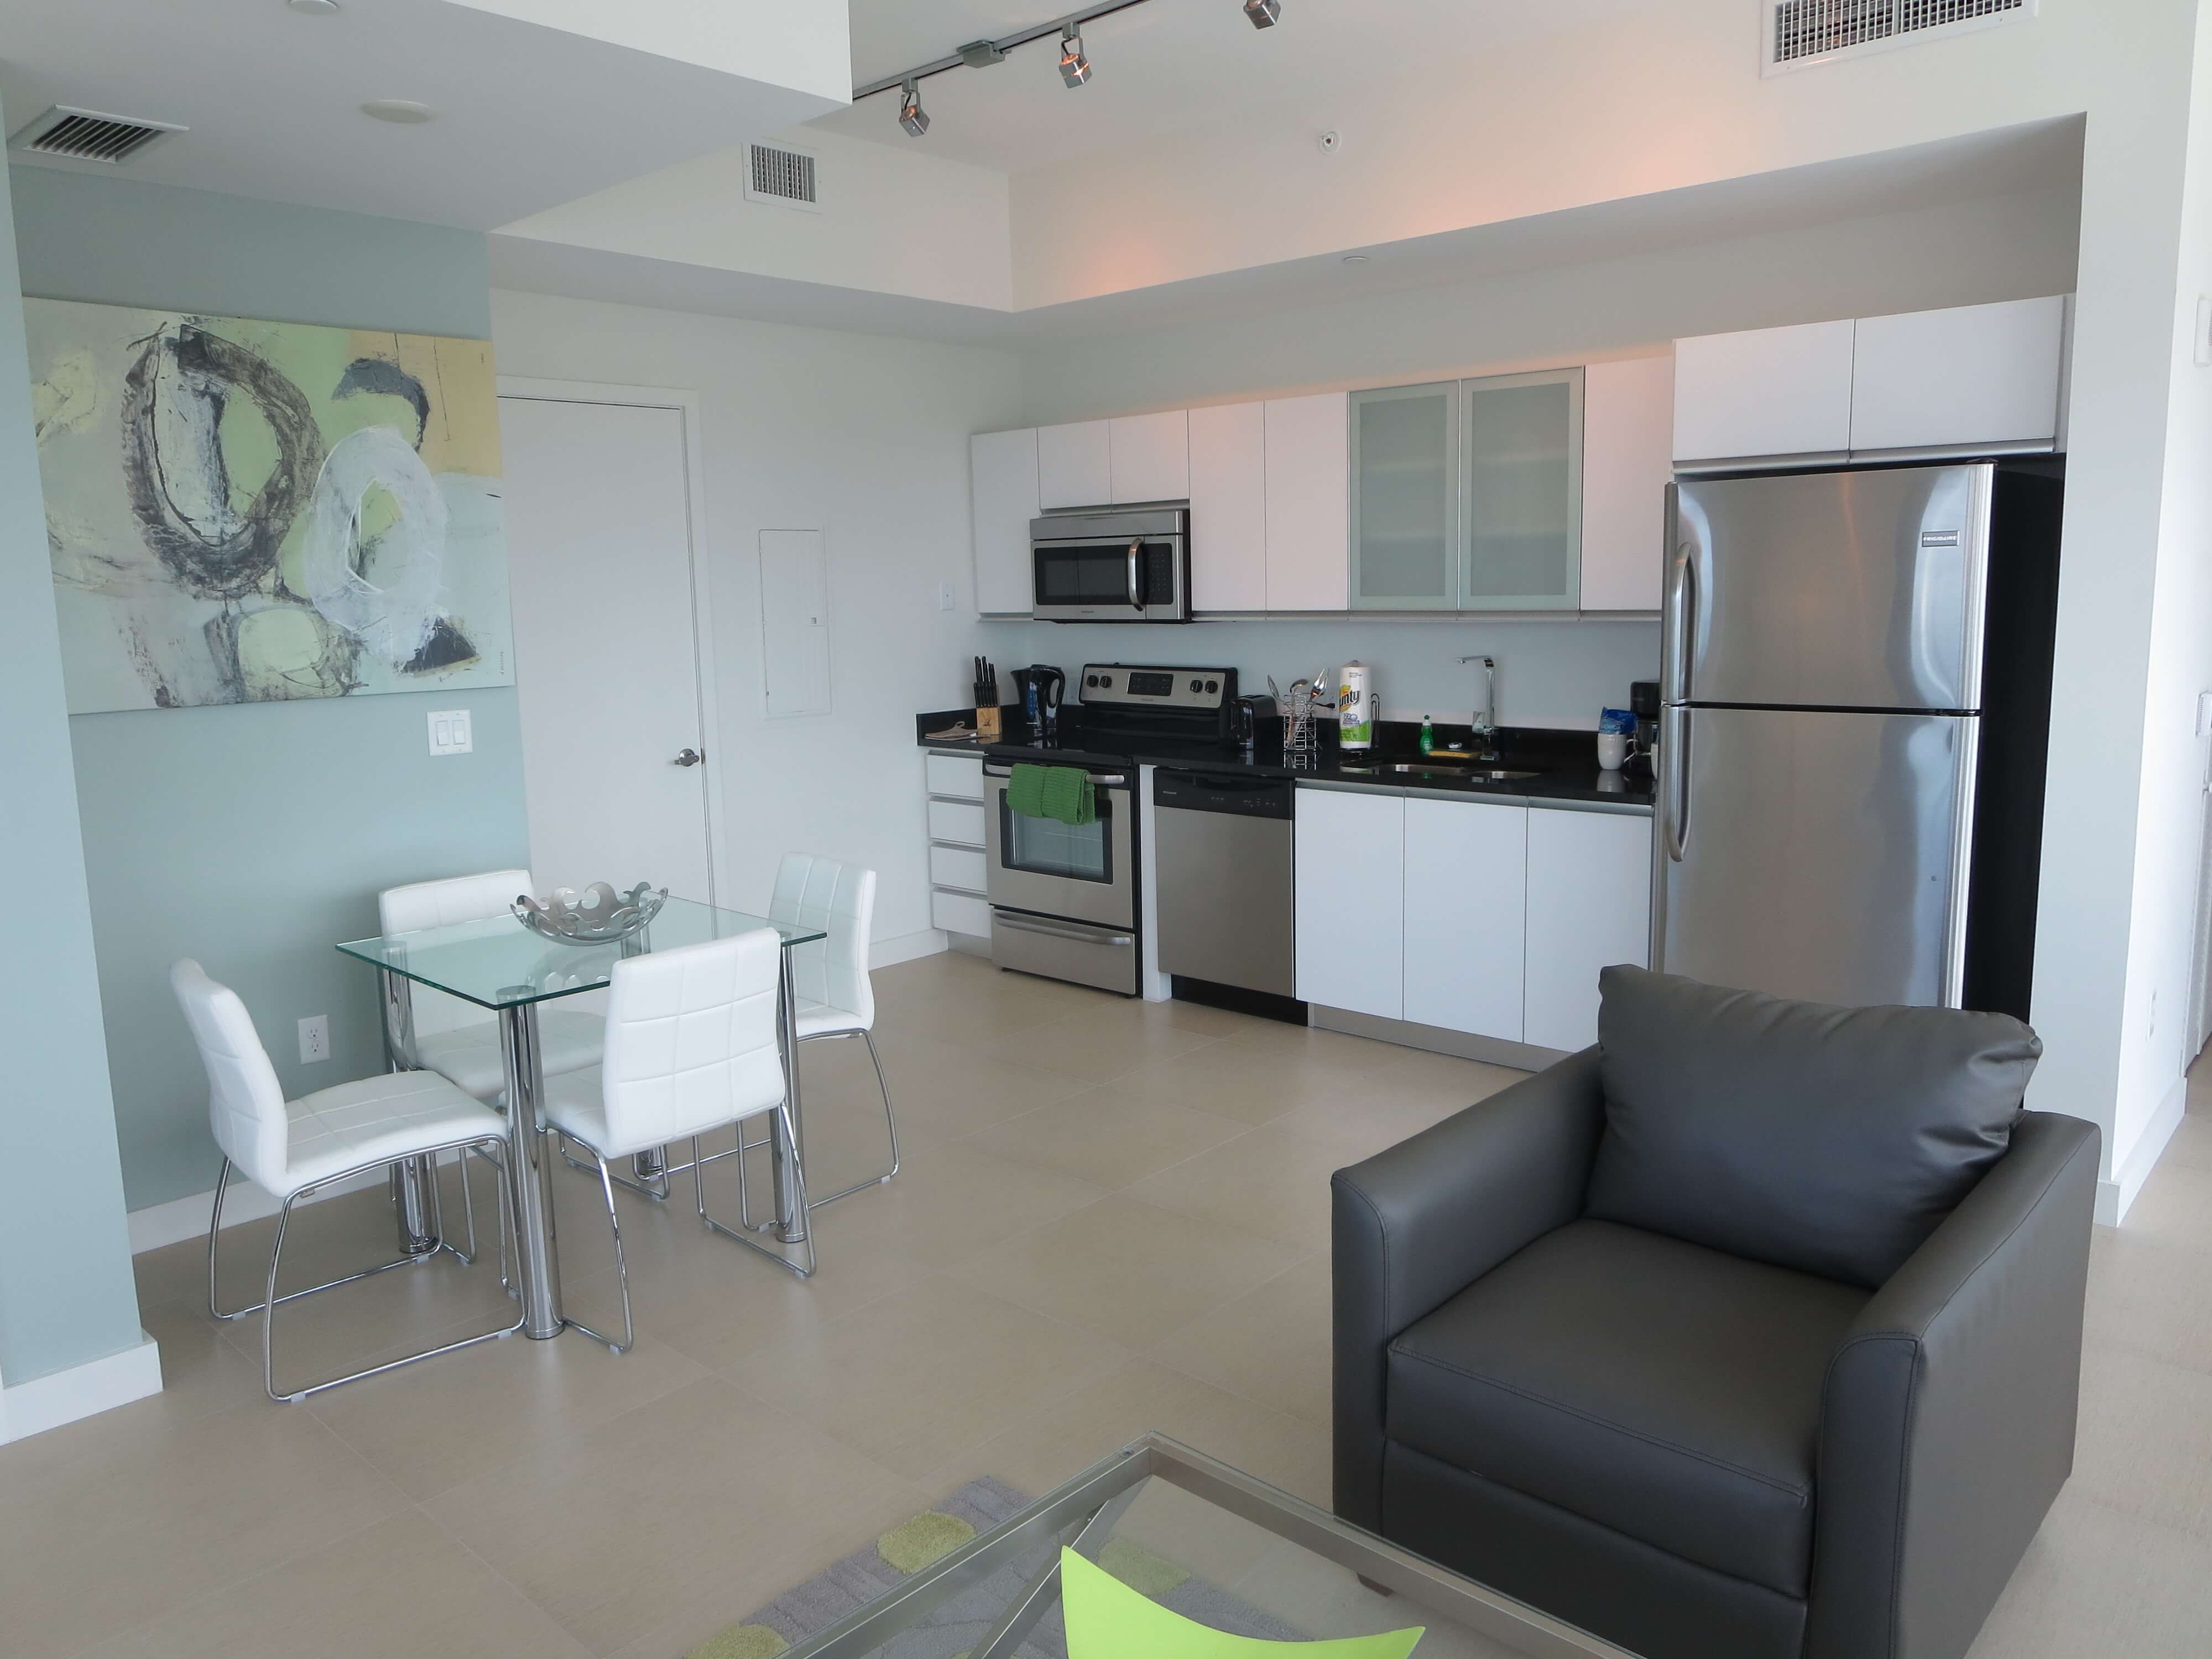 Miami Beach Furnished 1 Bedroom Apartment For Rent 6480 Per Month Rental Id 2870071